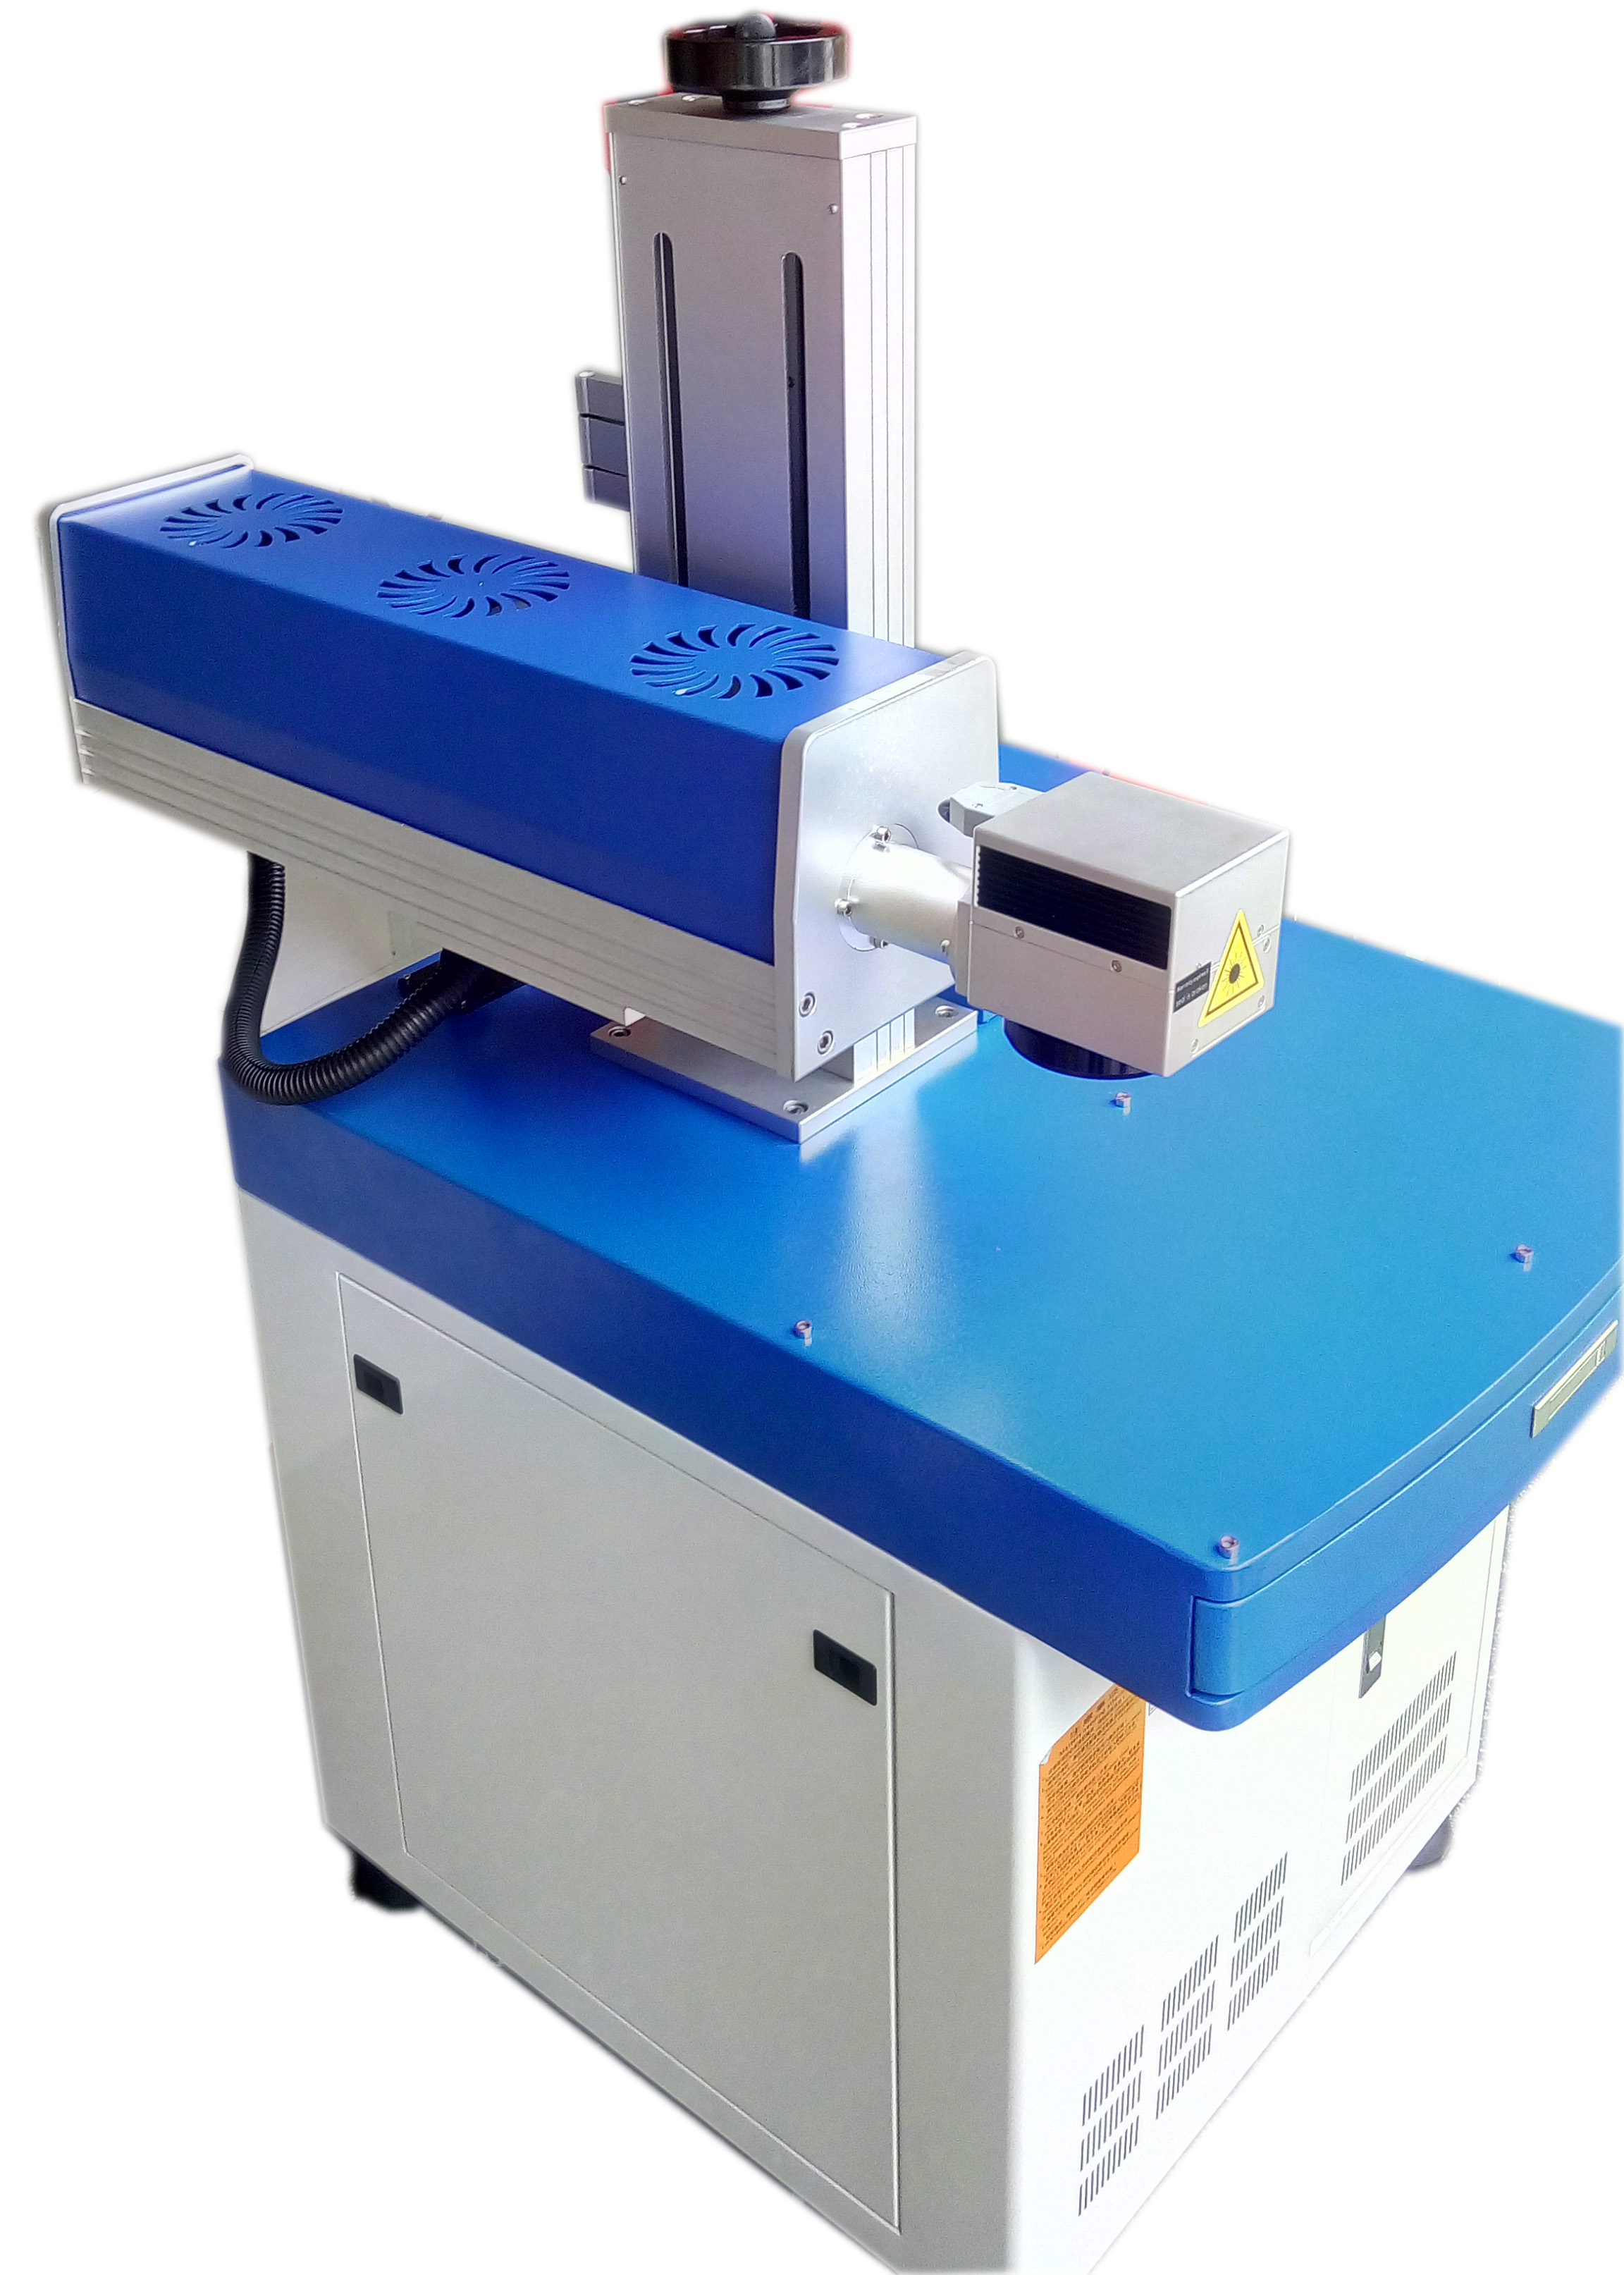 Co2 laser marking machine for non-metal